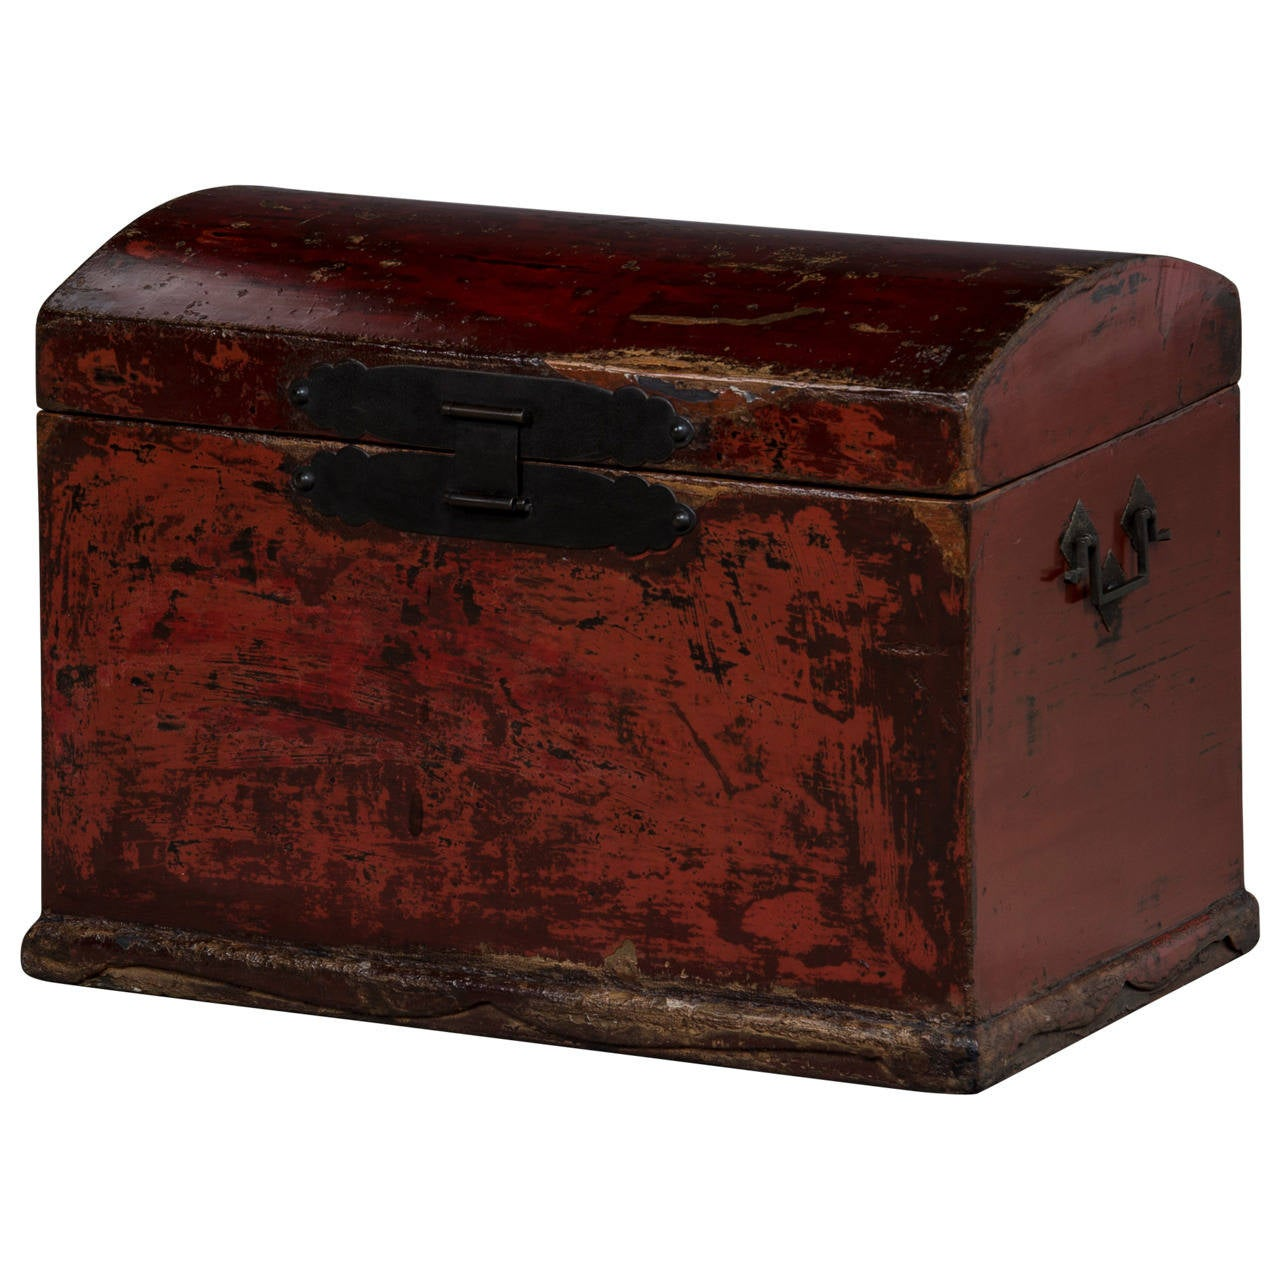 Chest with Thick Red Original Lacquer, Late 18th Century